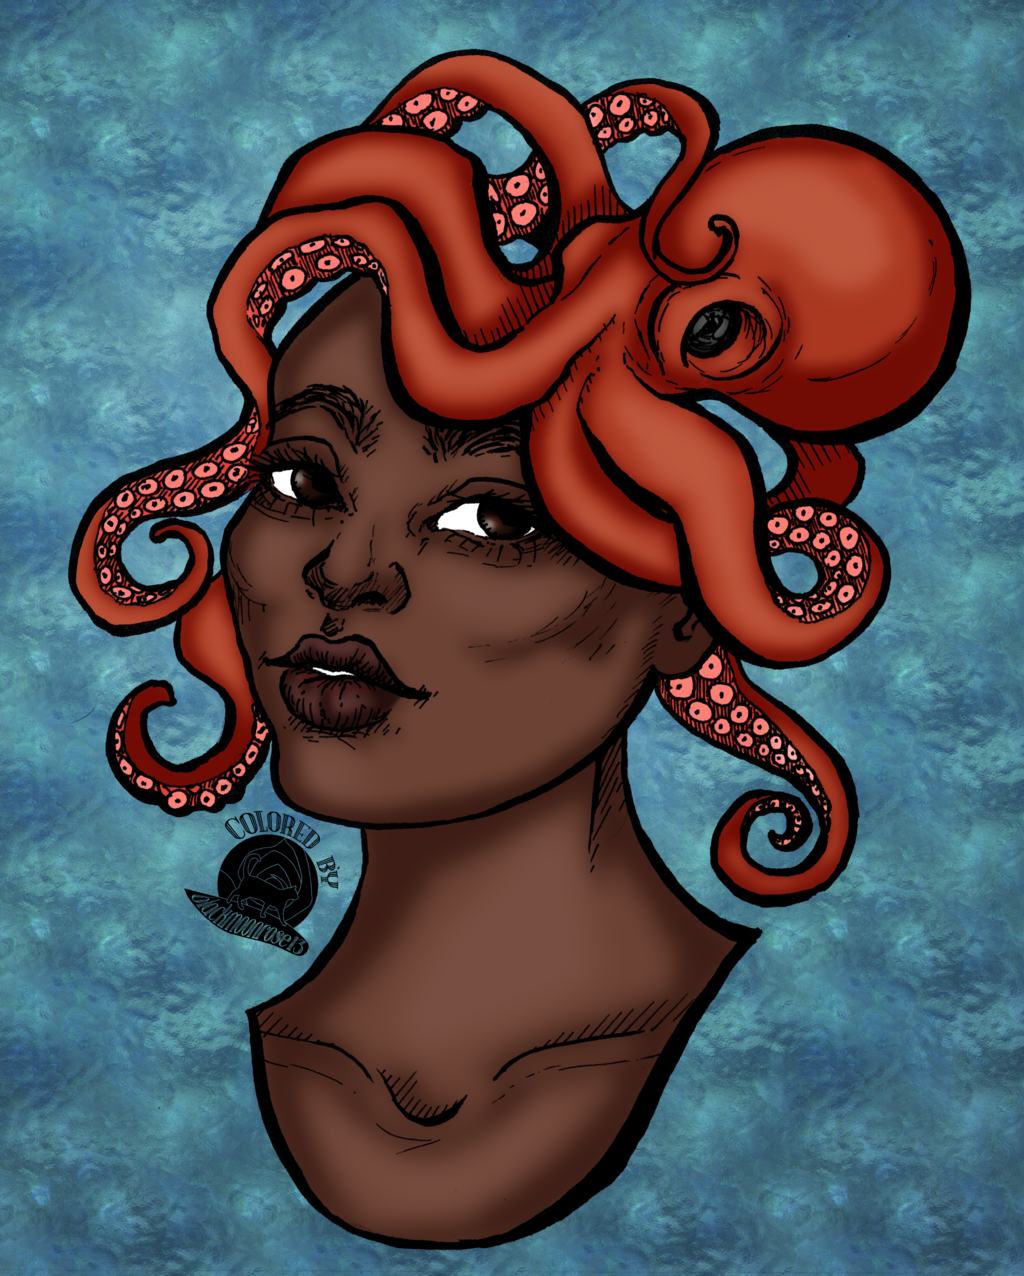 Most recent image: Love Me Some Tentacles